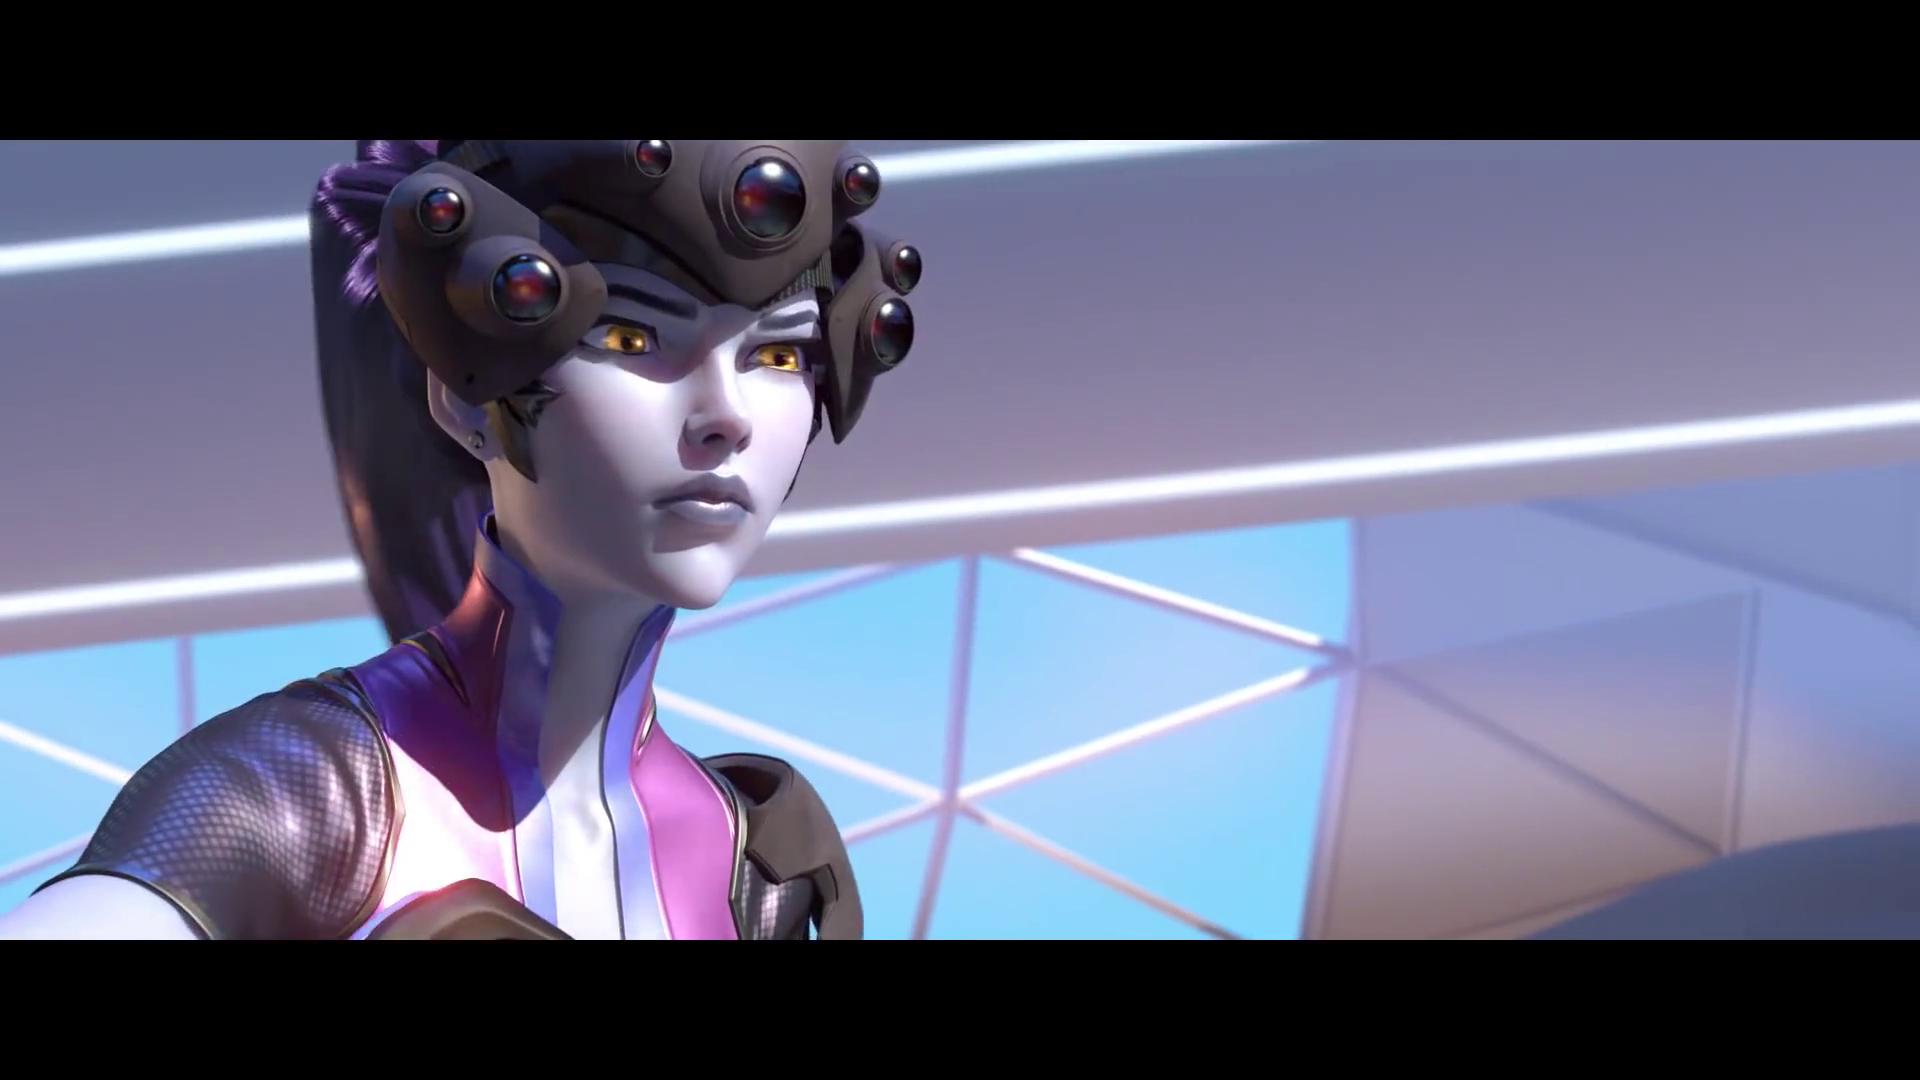 Widowmaker Overwatch Wallpaper Wallpapersafari